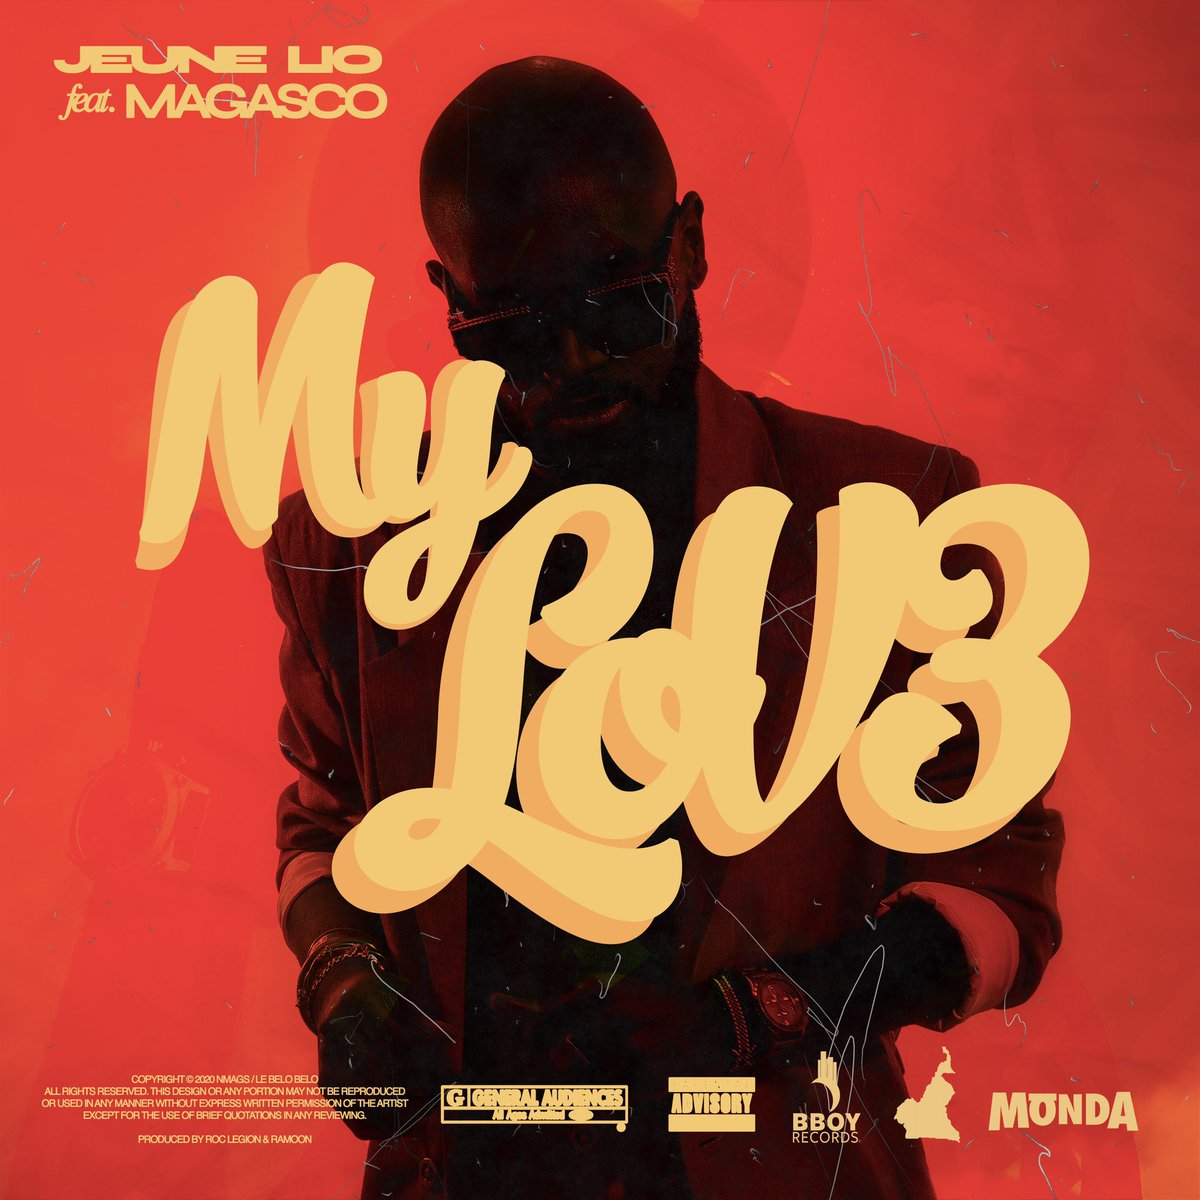 21.07.2020 the release date of my first music single «MY LOVE» with Cameroonian sensation @magasco_bboy aka the bamenda boy, a Cameroon 🇨🇲 collab for my first single was normal. Like i said yesterday, a music single why ? Because why not. Cover by @apm_maathio @mondalife https://t.co/5LrS9tGTW9